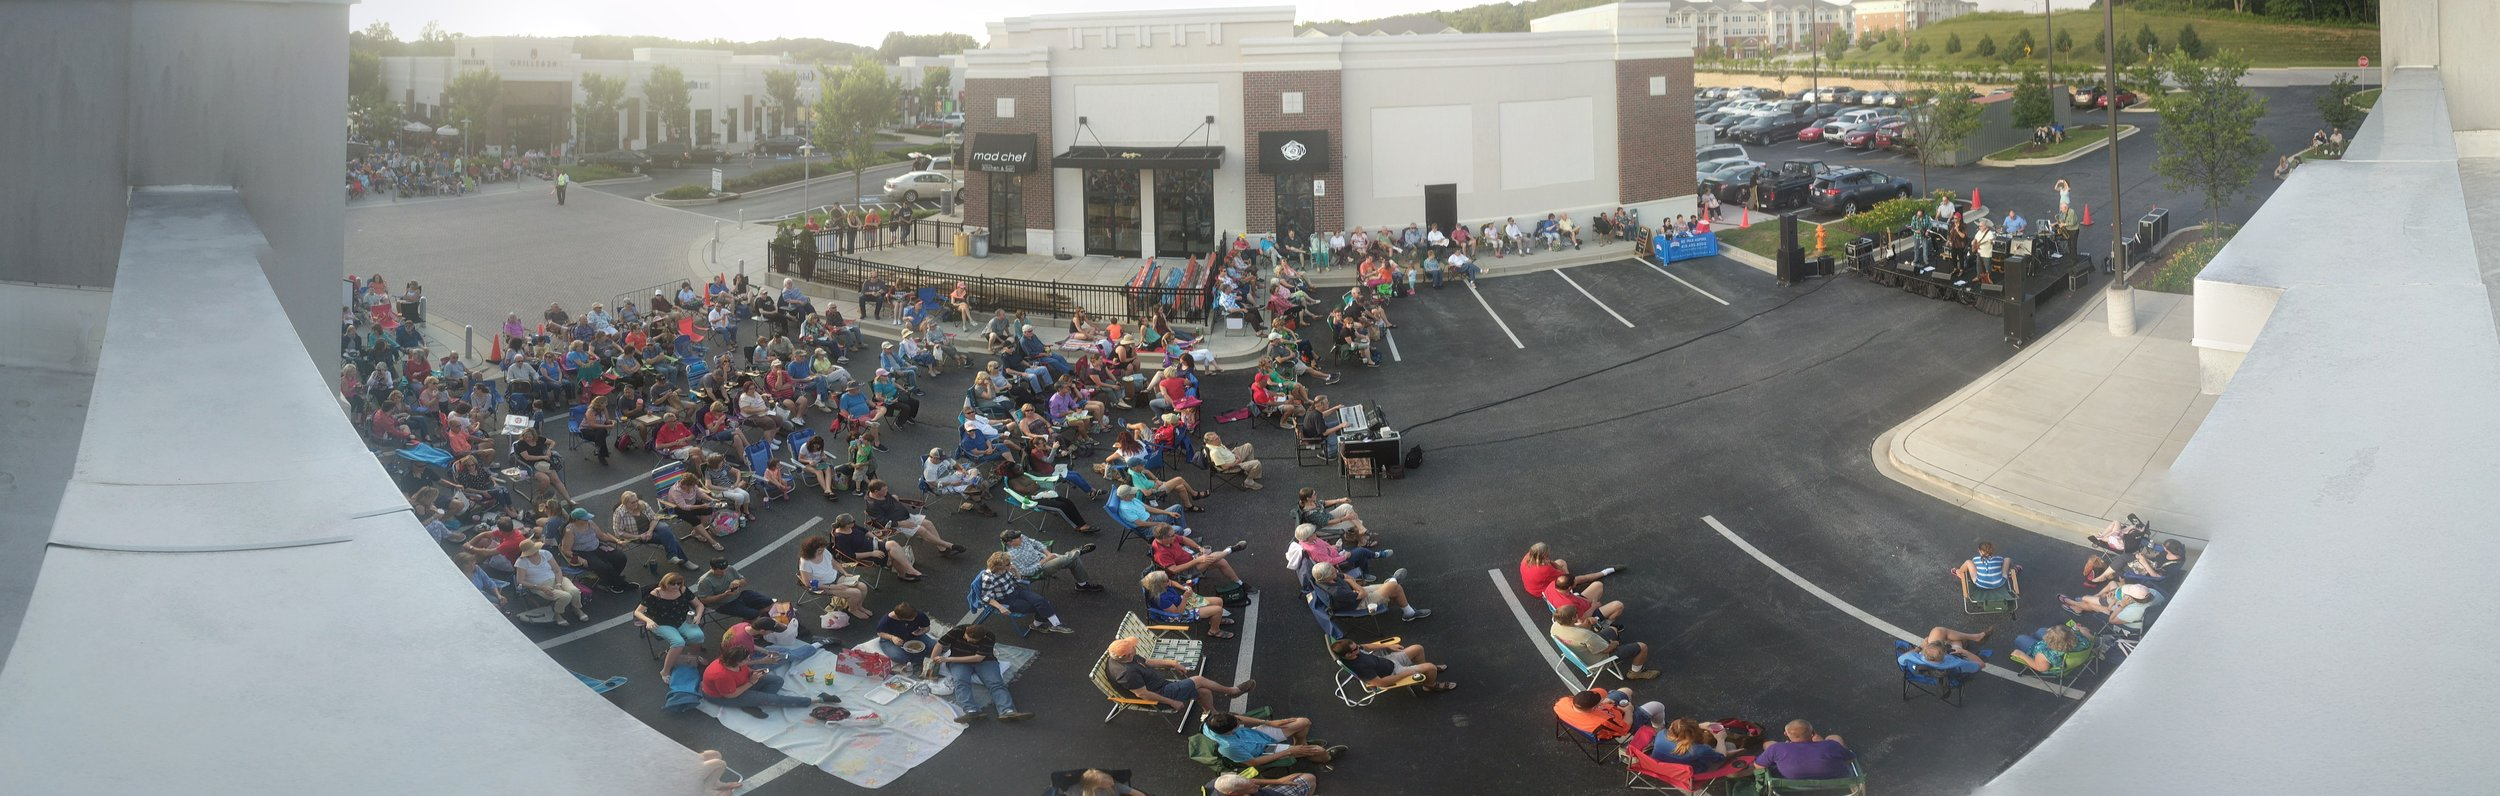 turf-valley-towne-square-free-concert